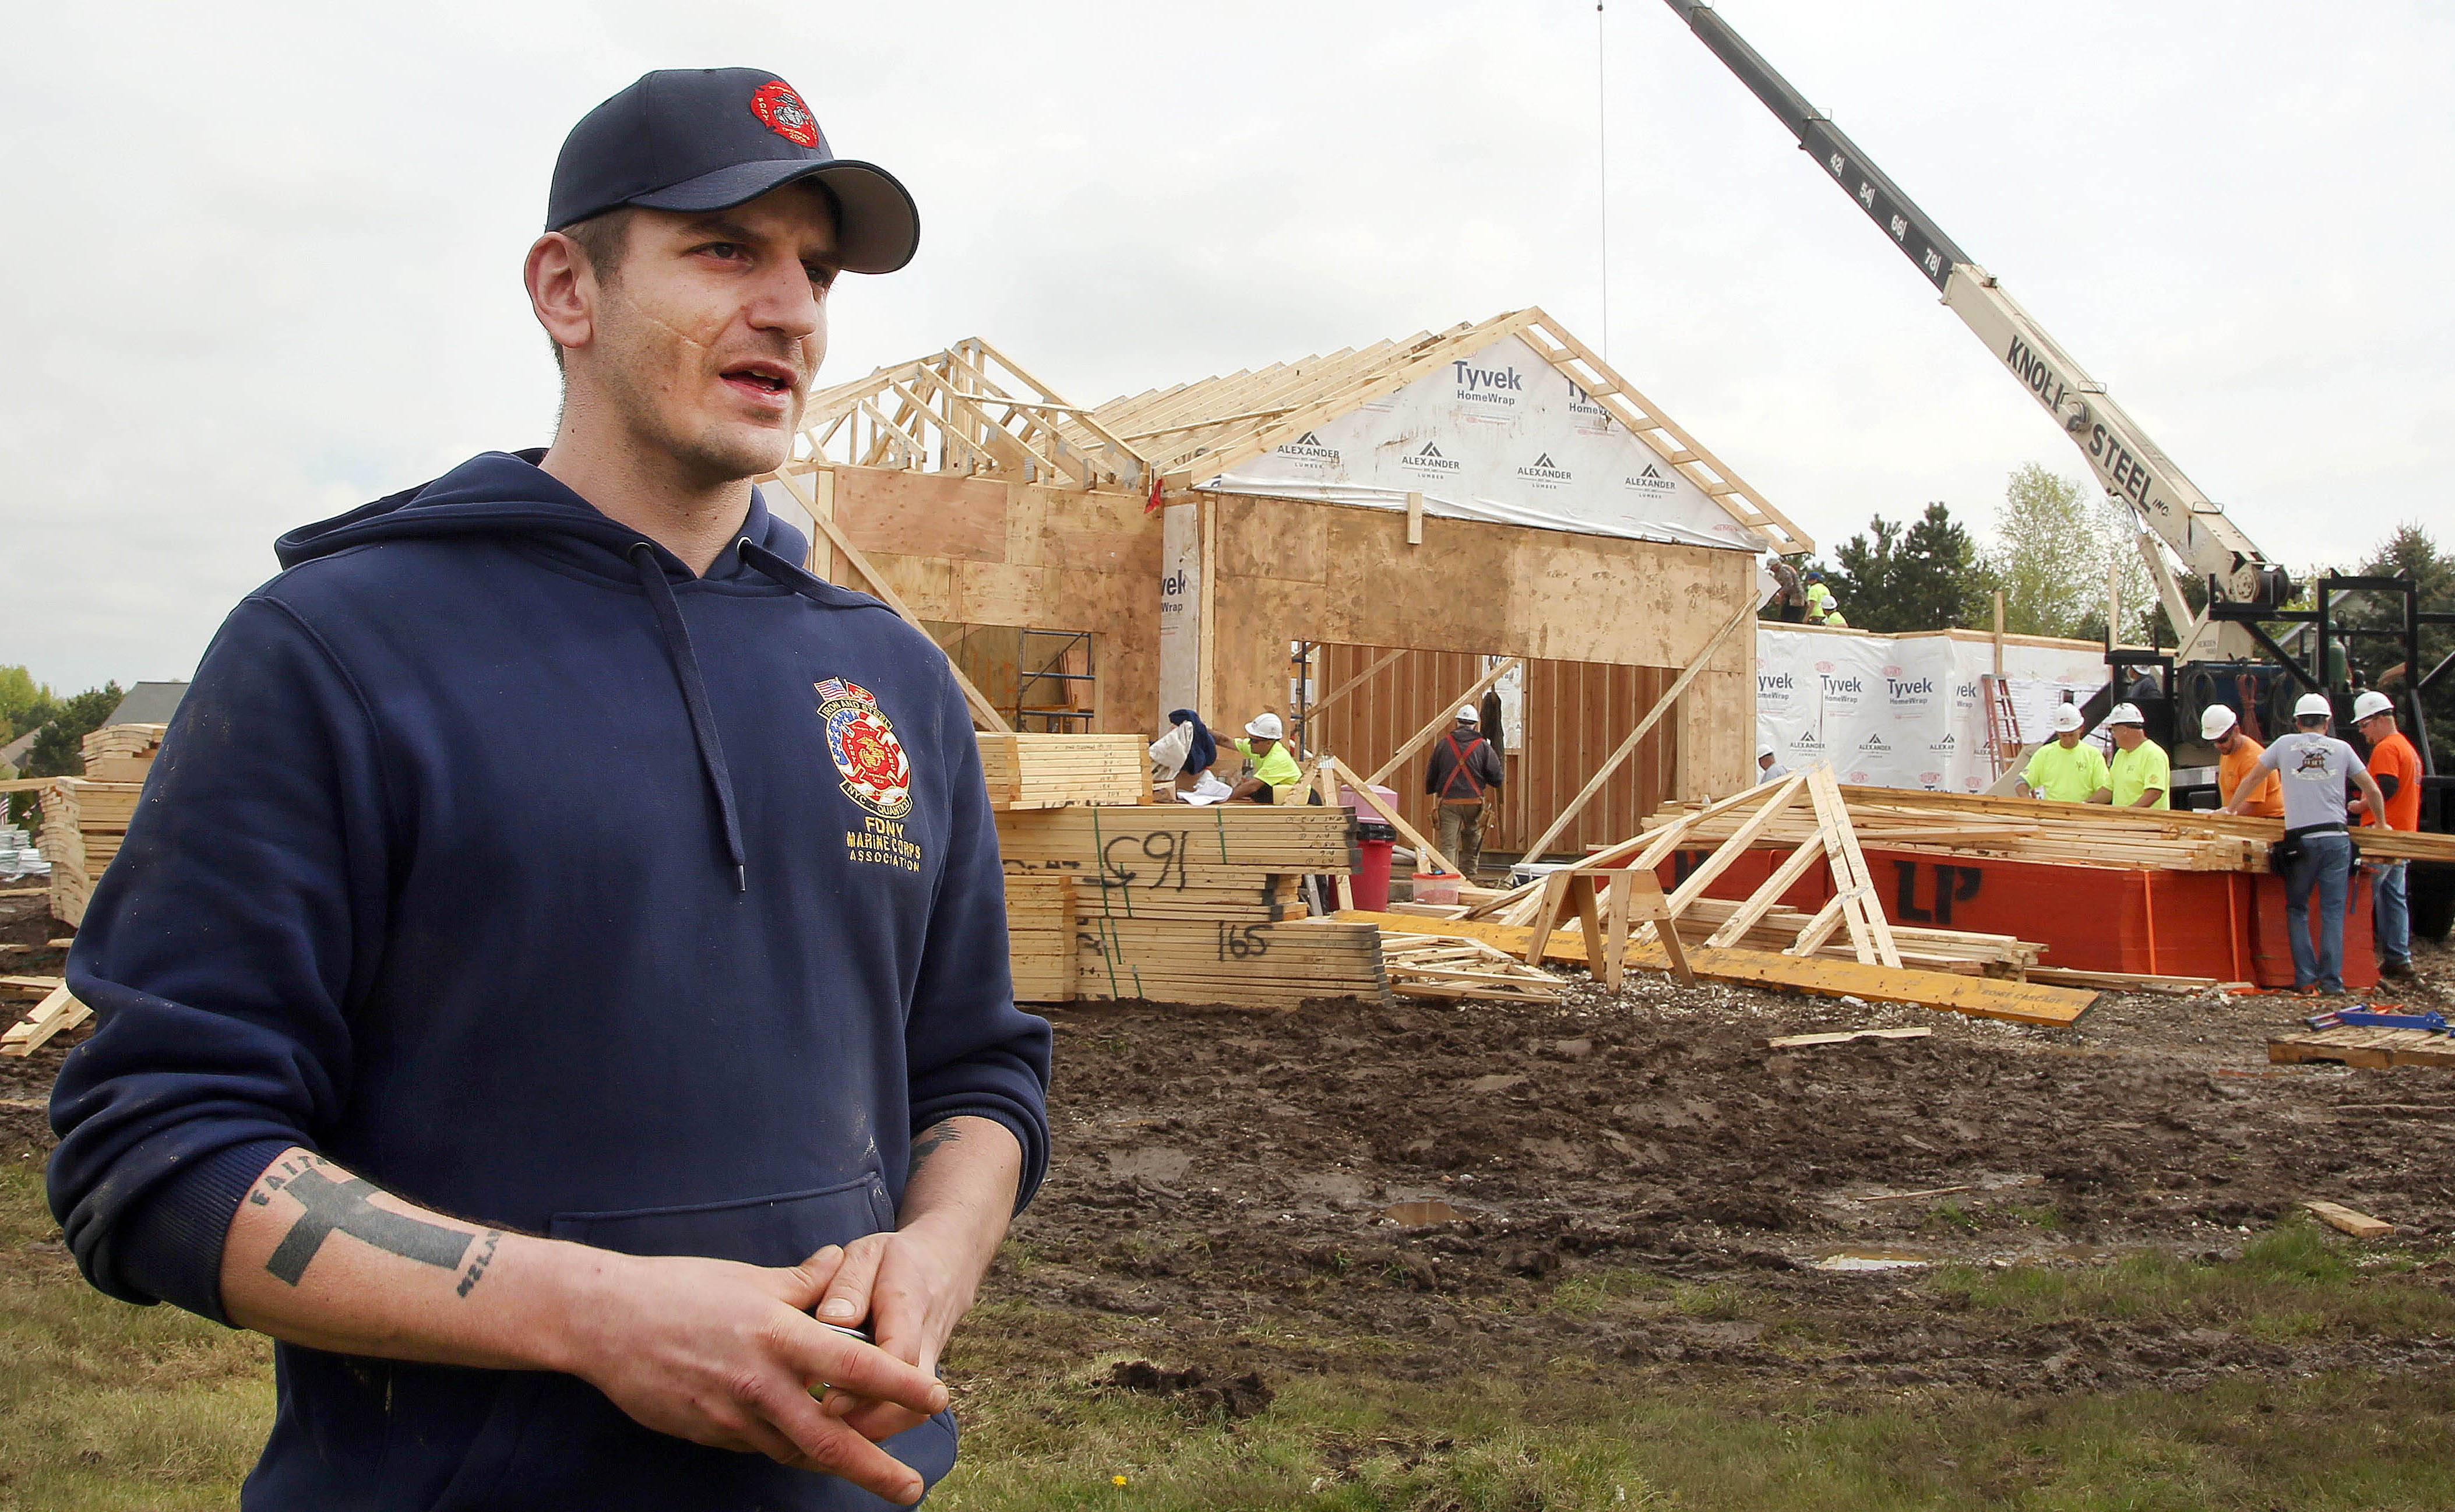 Army veteran Tony Chobanov of Naperville reflects on the generosity of volunteers who began construction on a new home for him and his family Thursday in Spring Grove.